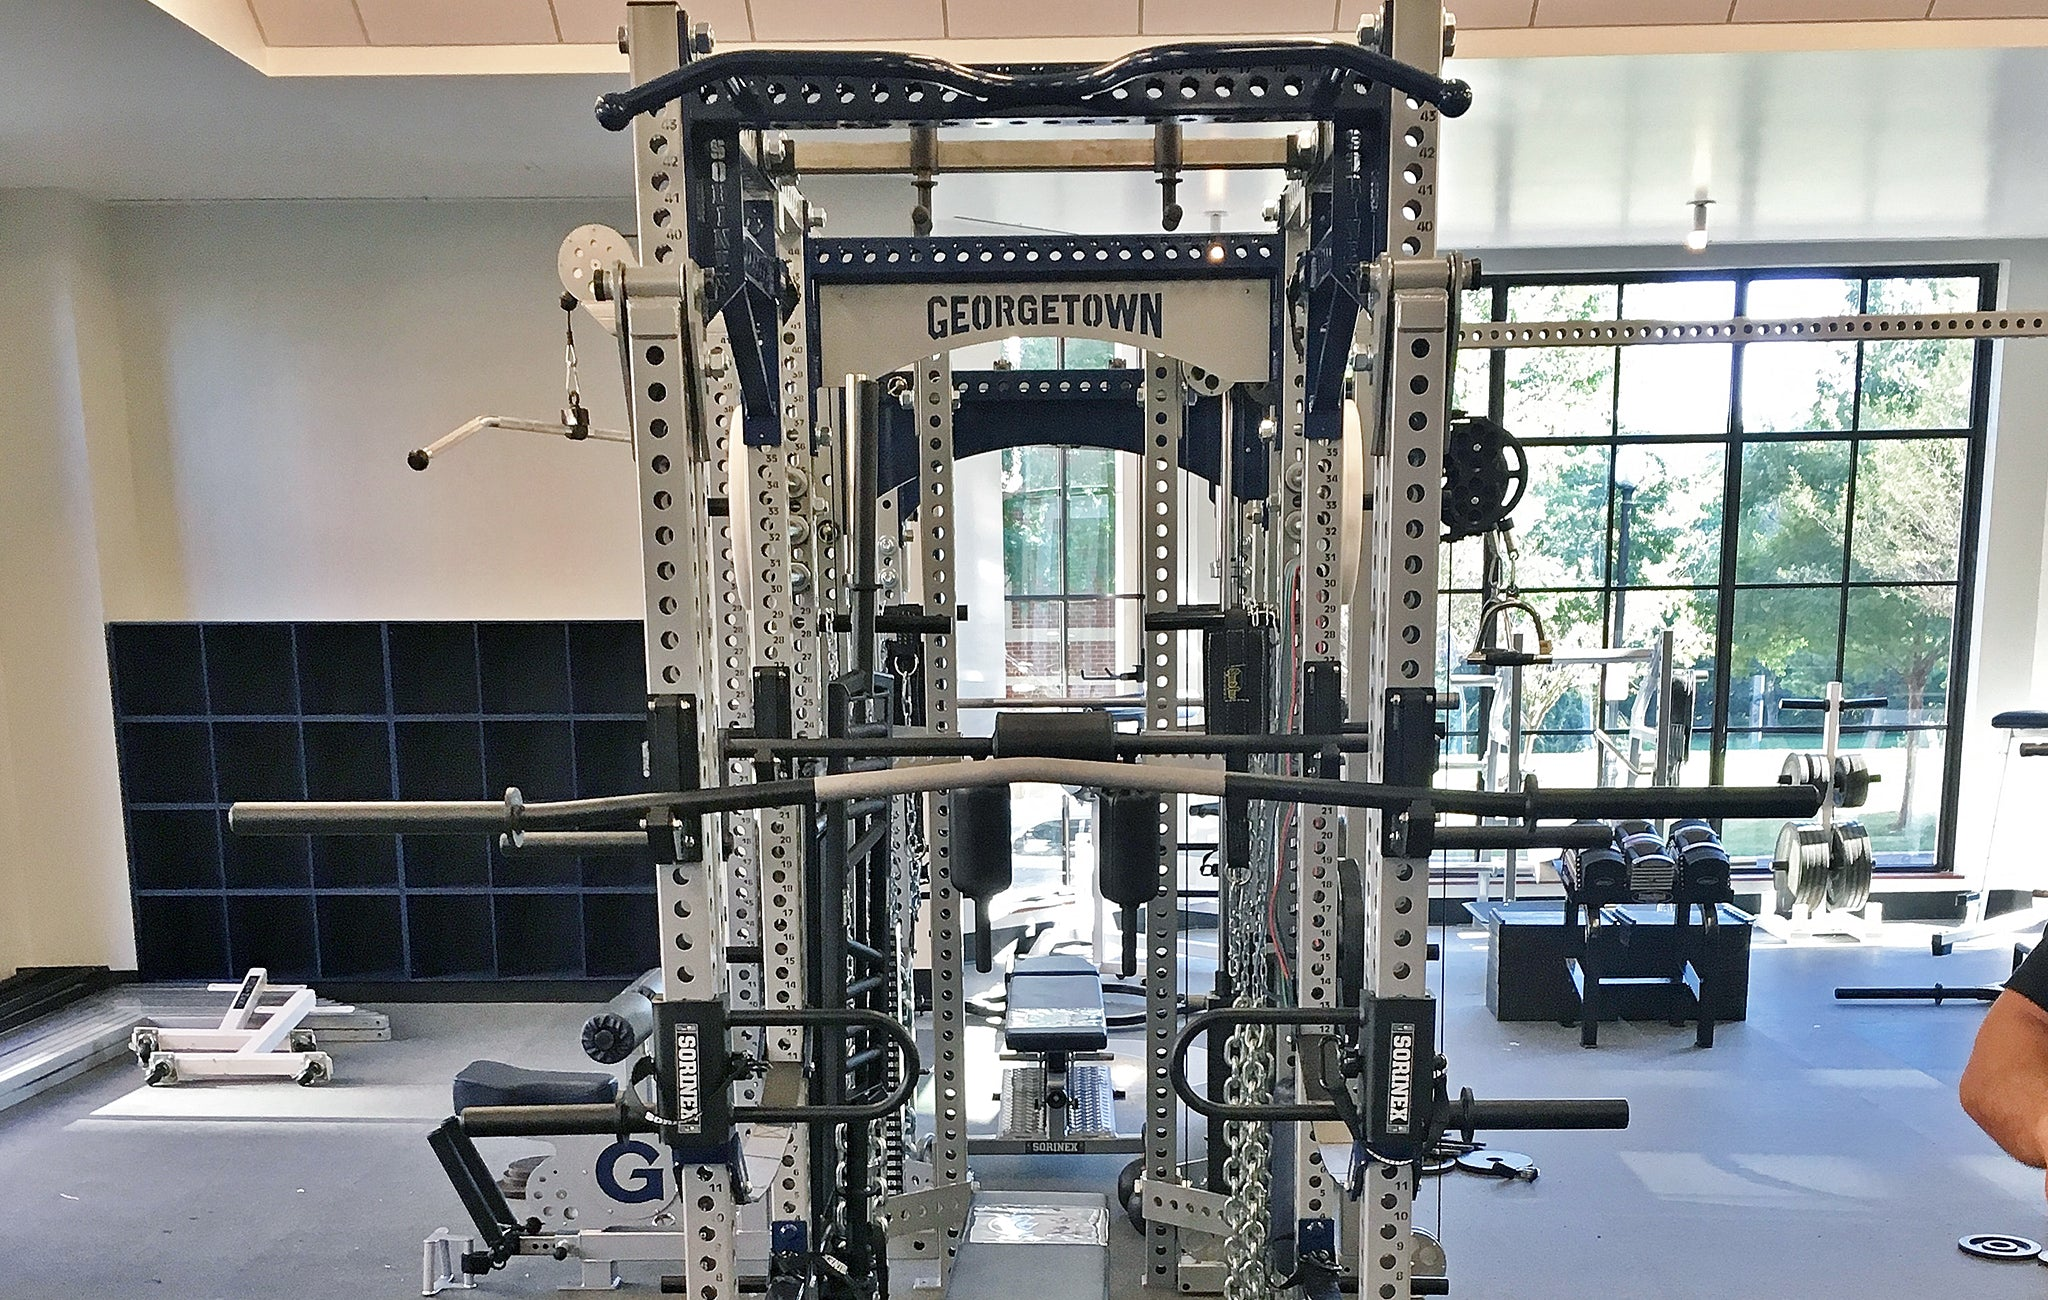 Georgetown University Olympic Weight Room